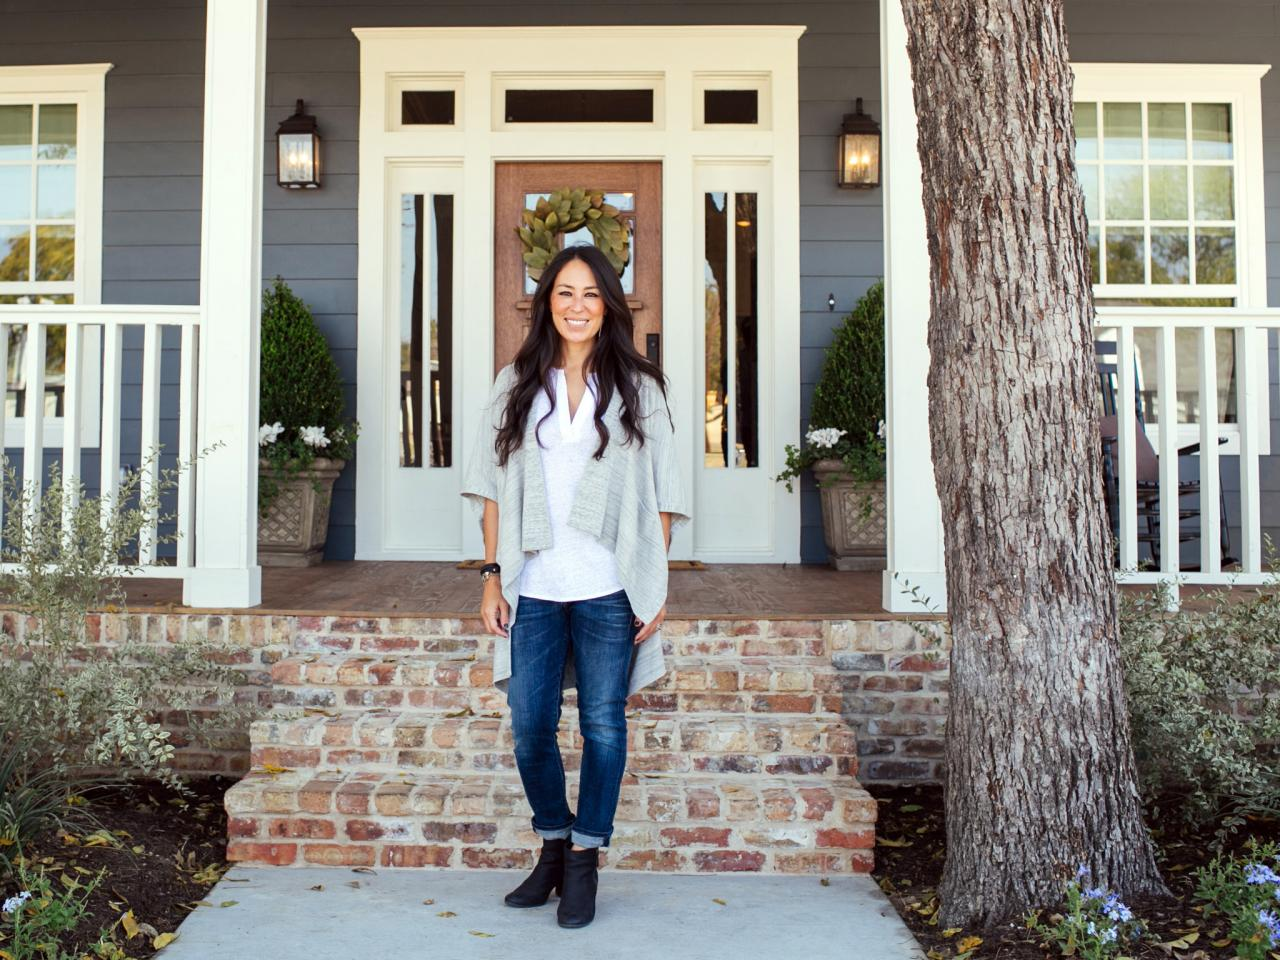 design tips from joanna gaines craftsman style with a modern edge hgtv 39 s decorating design. Black Bedroom Furniture Sets. Home Design Ideas